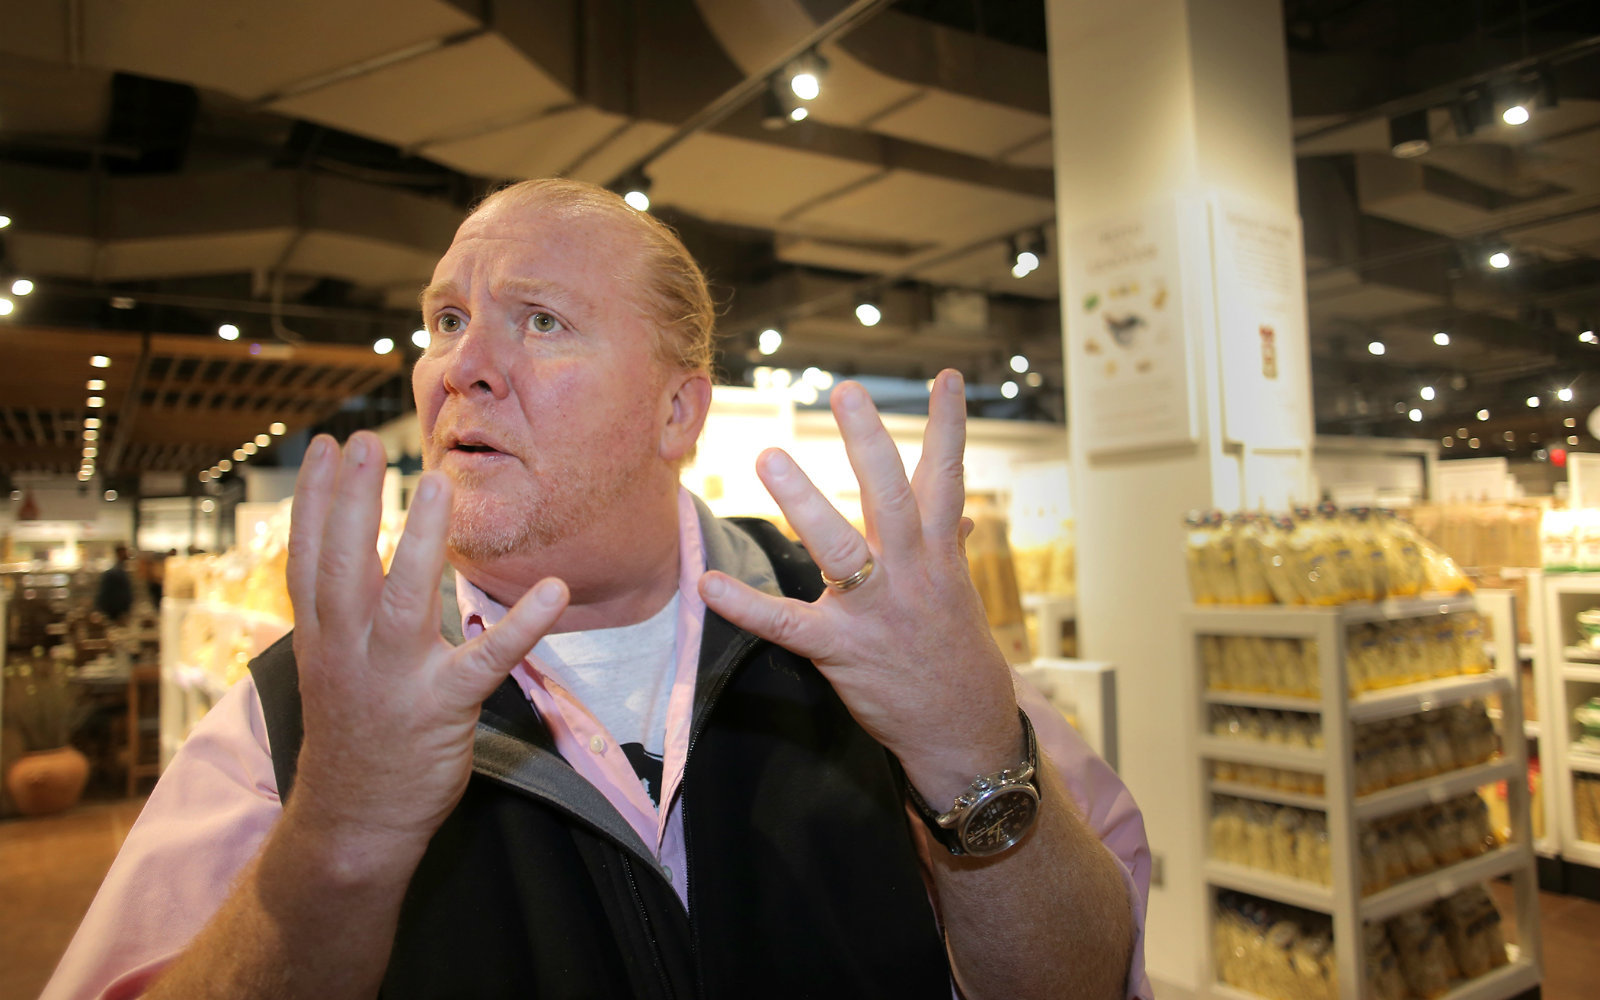 The double life of Mario Batali